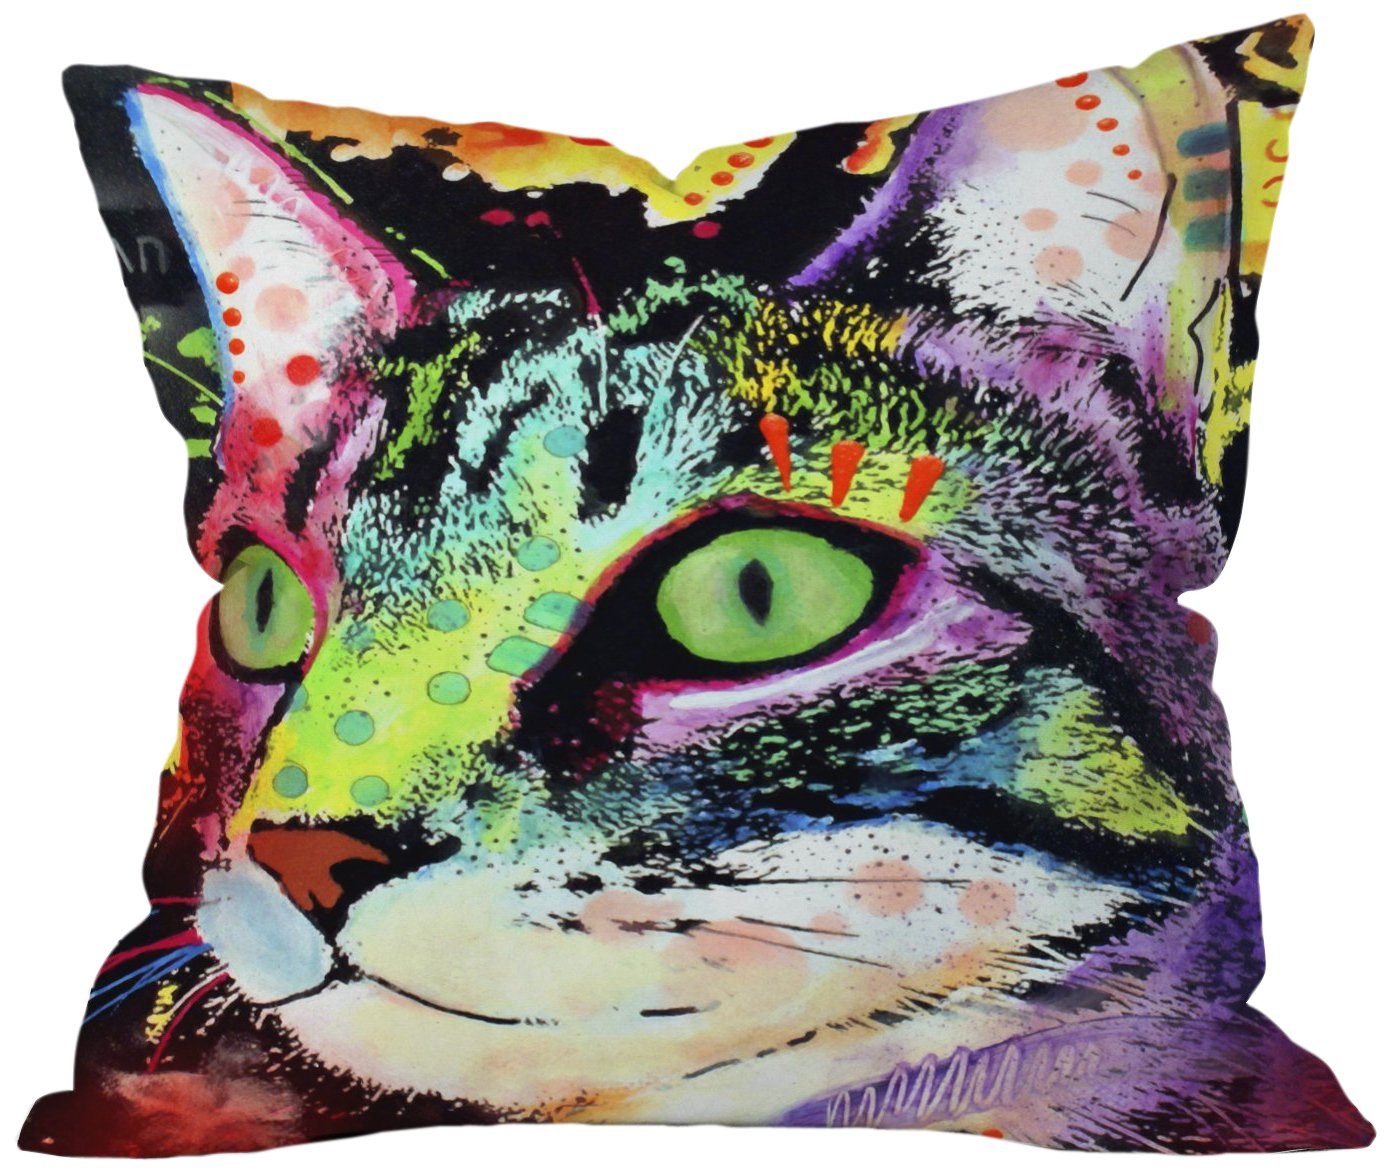 DENY Designs Dean Russo Curiosity Cat Throw Pillow, 26 by 26-Inch